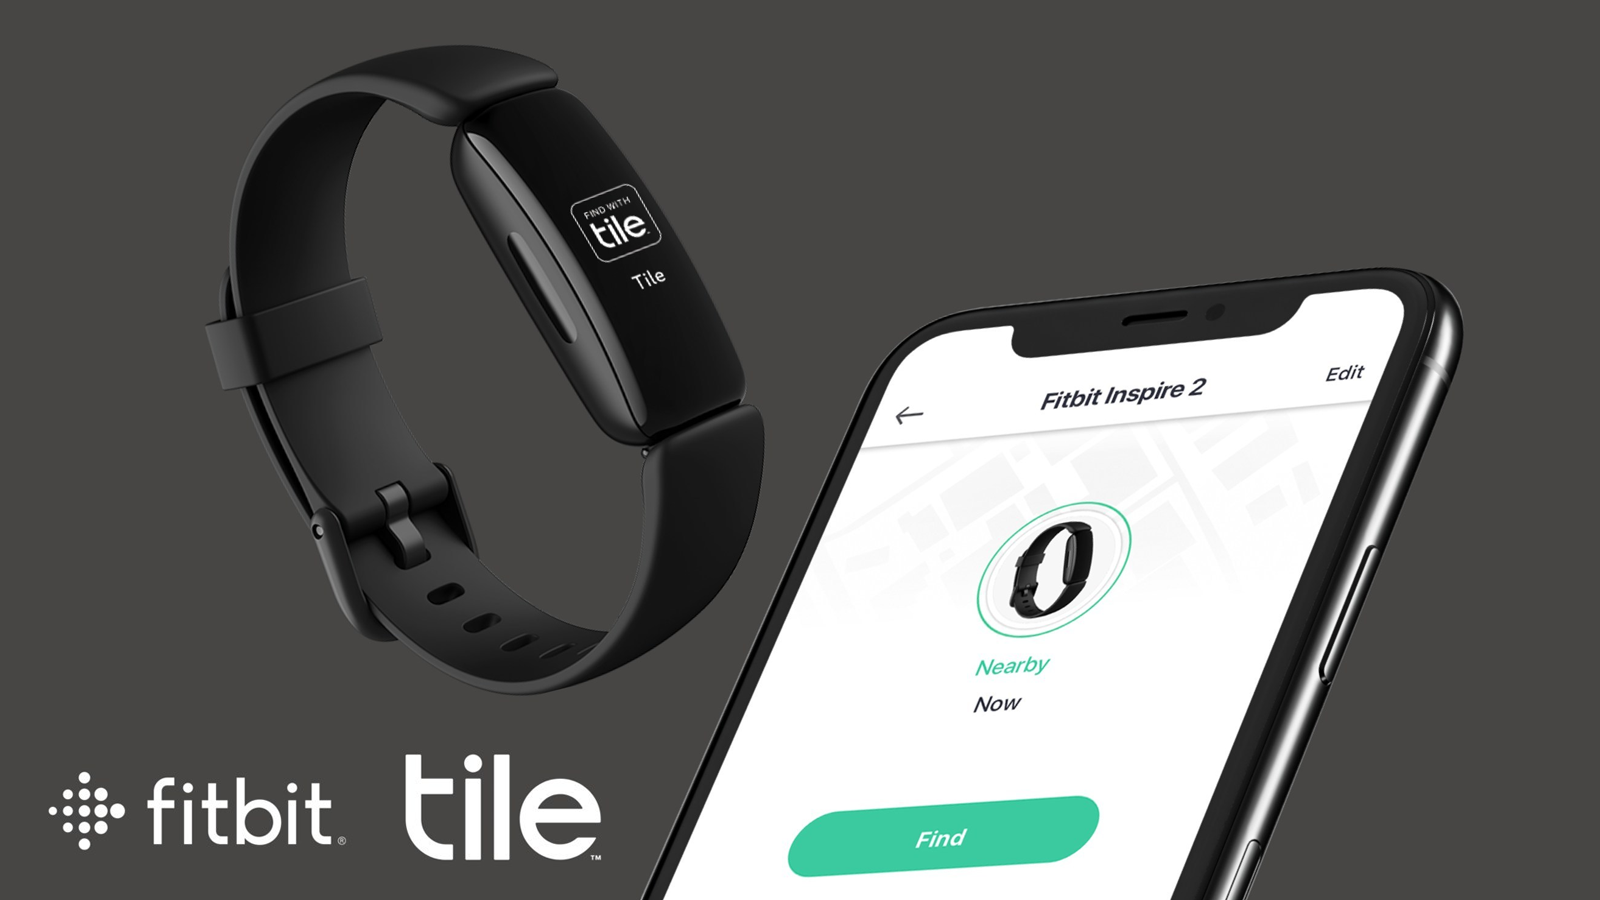 fitbit inspire 2 gets free tile